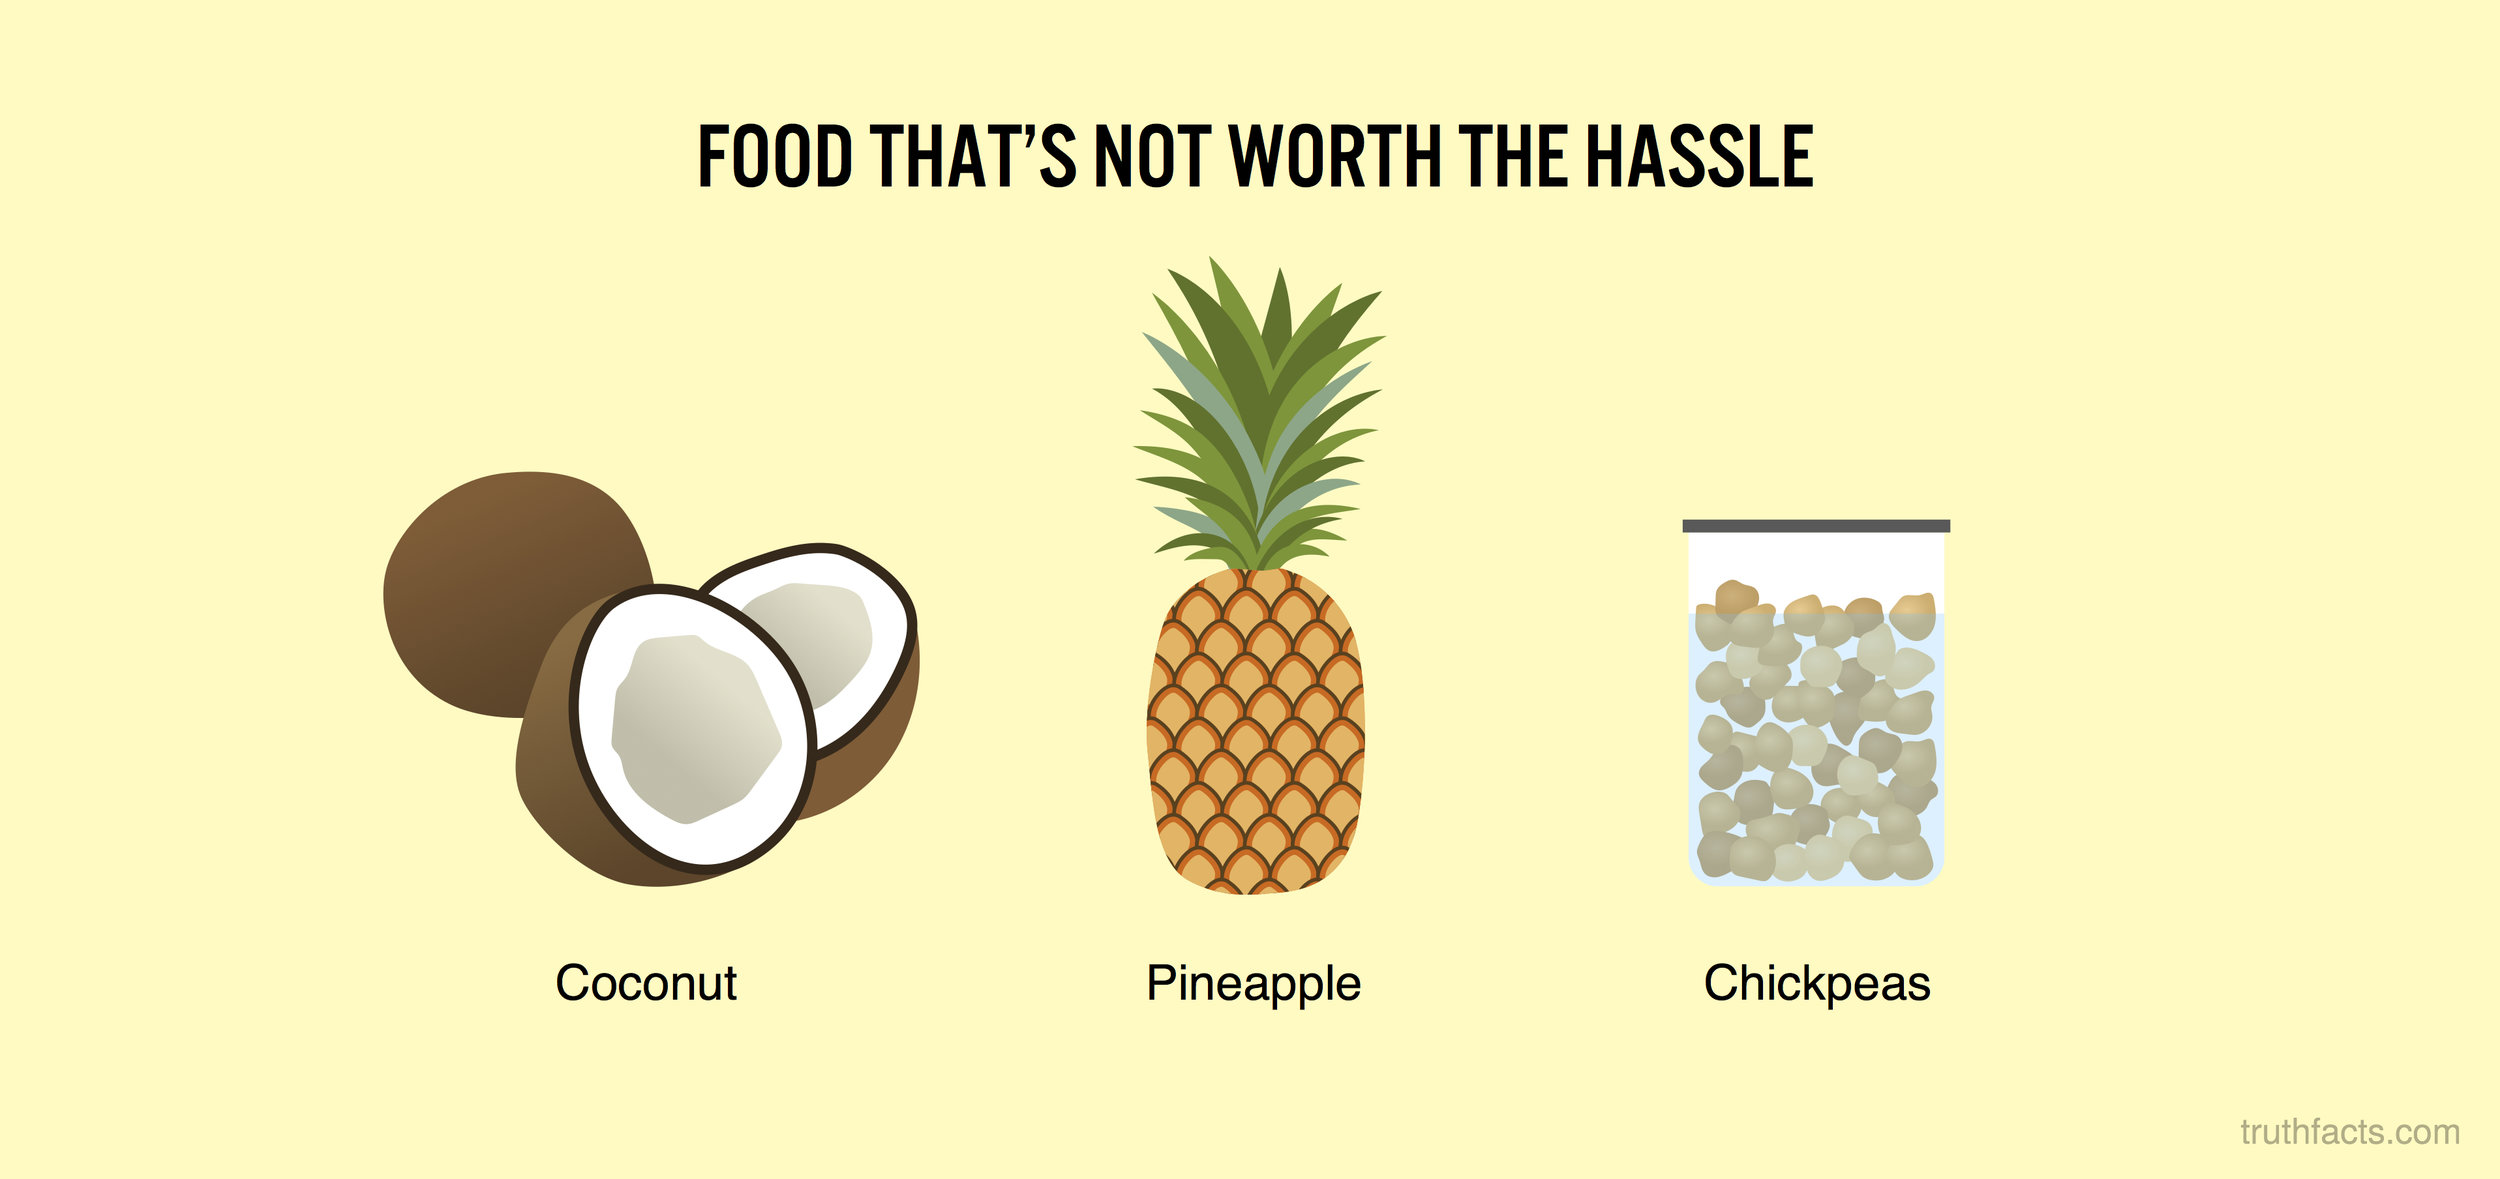 Food that's not worth the hassle